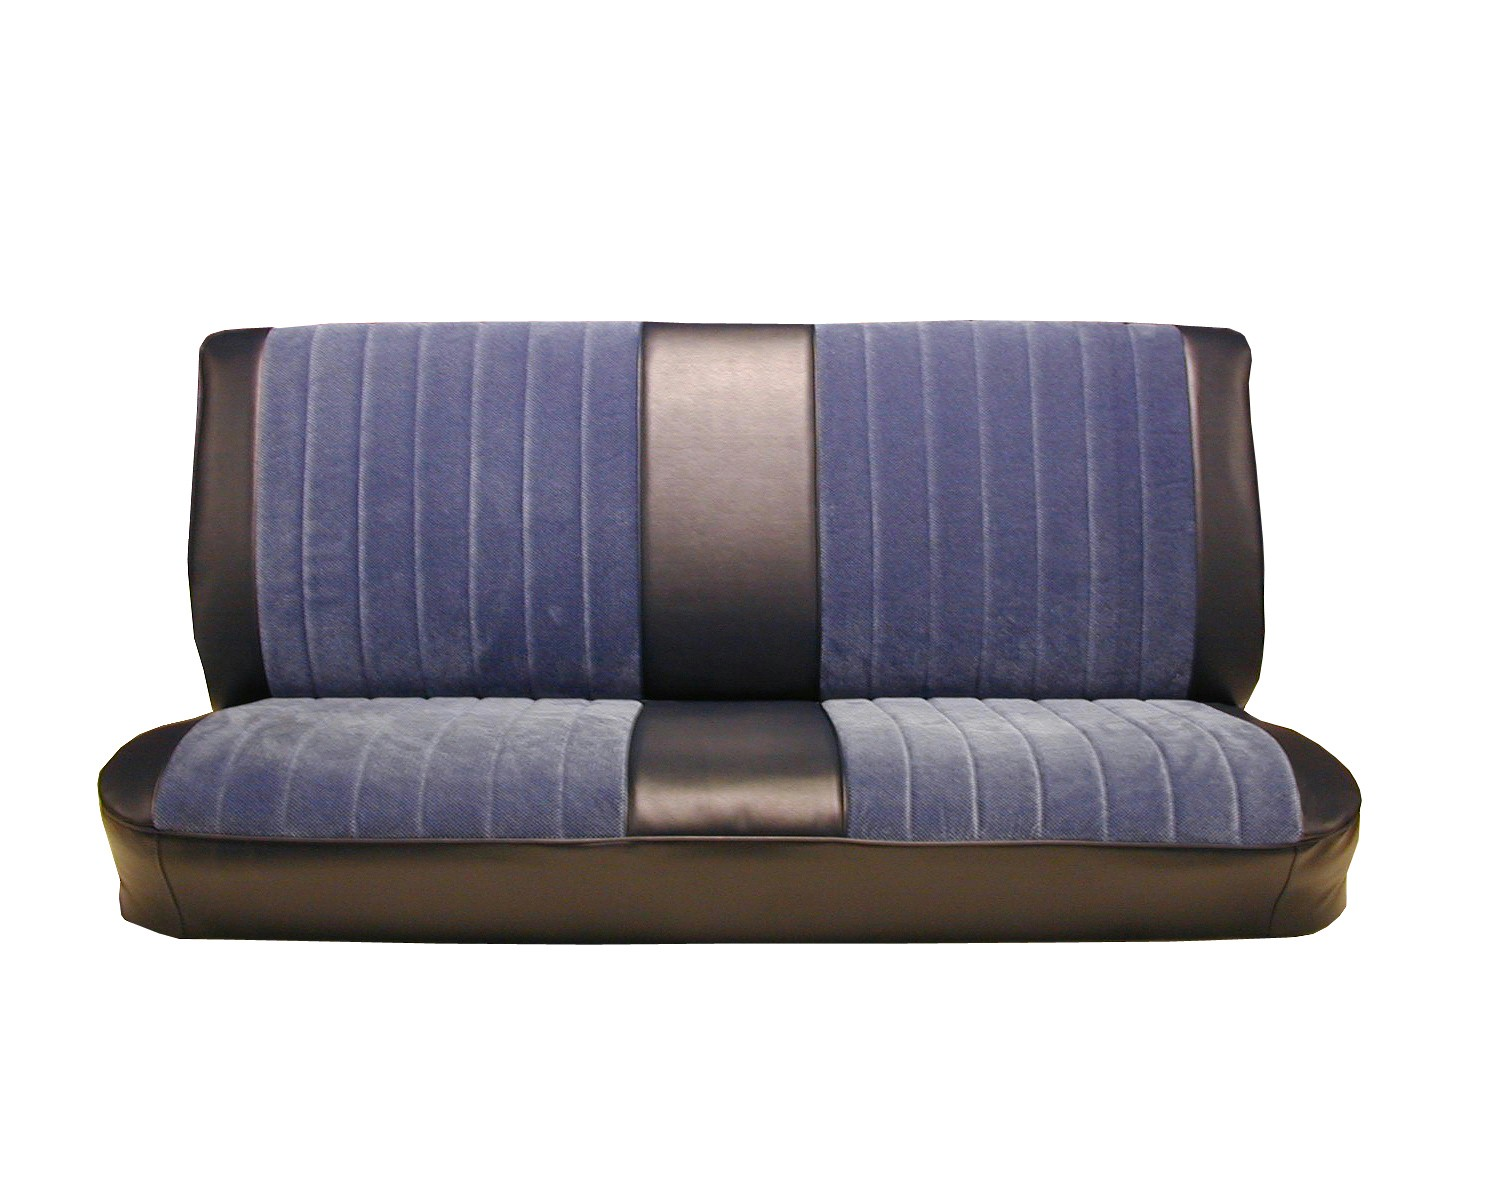 Superb img of U1005 73 80 Chevy / GMC Standard or Crew Cab Truck Bench Seat with #715F49 color and 1500x1200 pixels